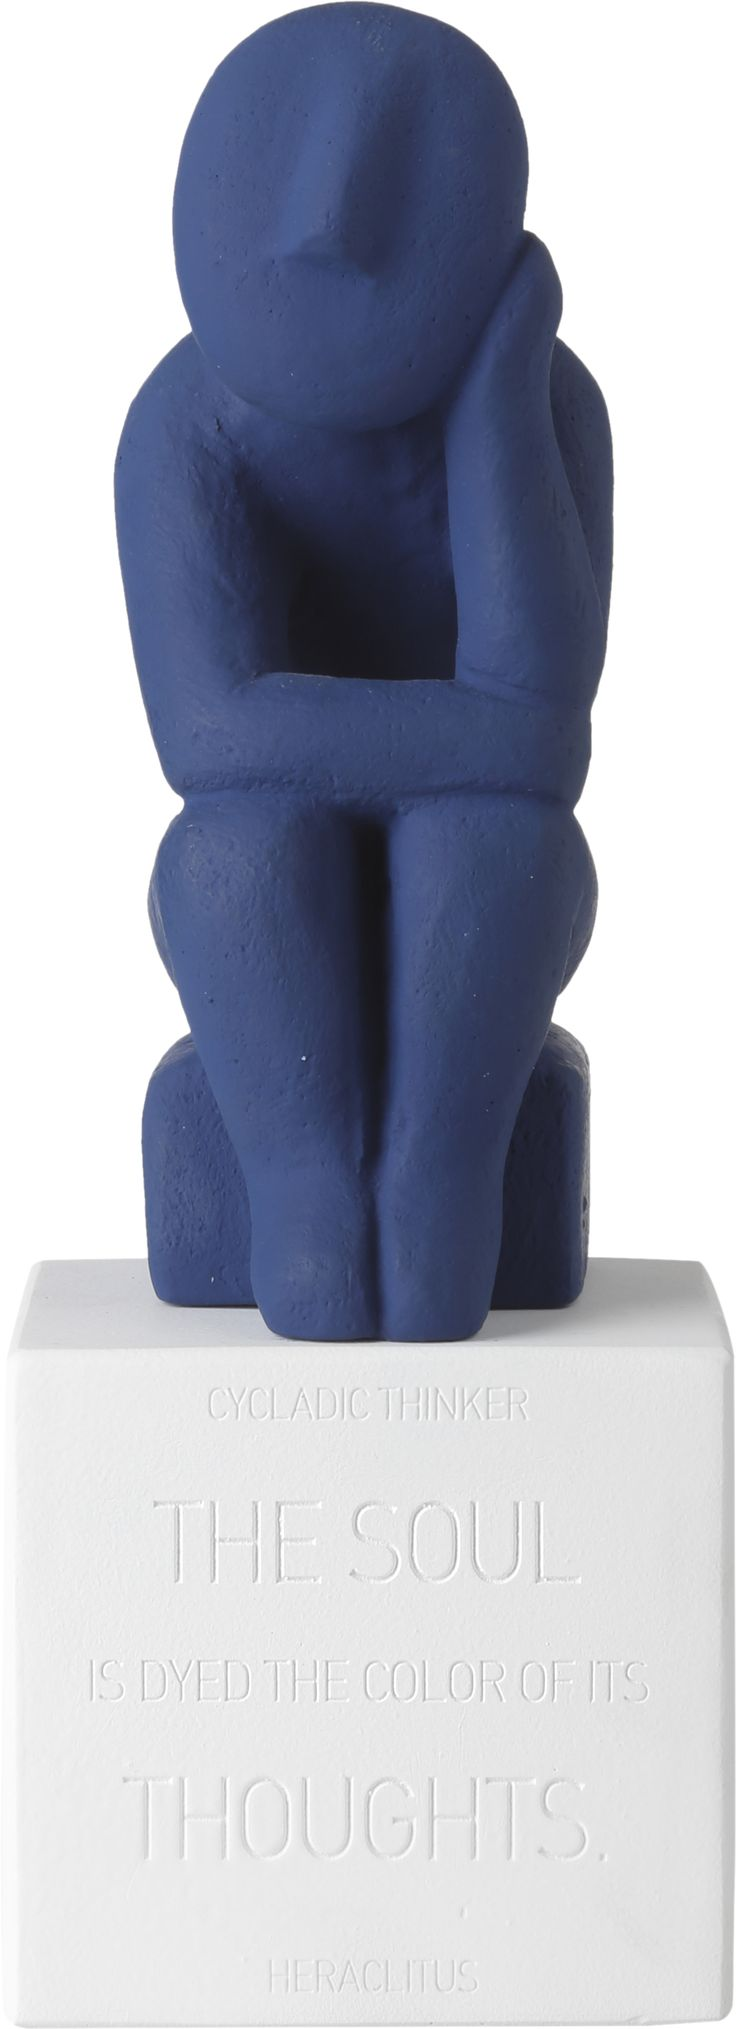 Cycladic Thinker Extra Large. Material: Ceramine Color: Midnight blue